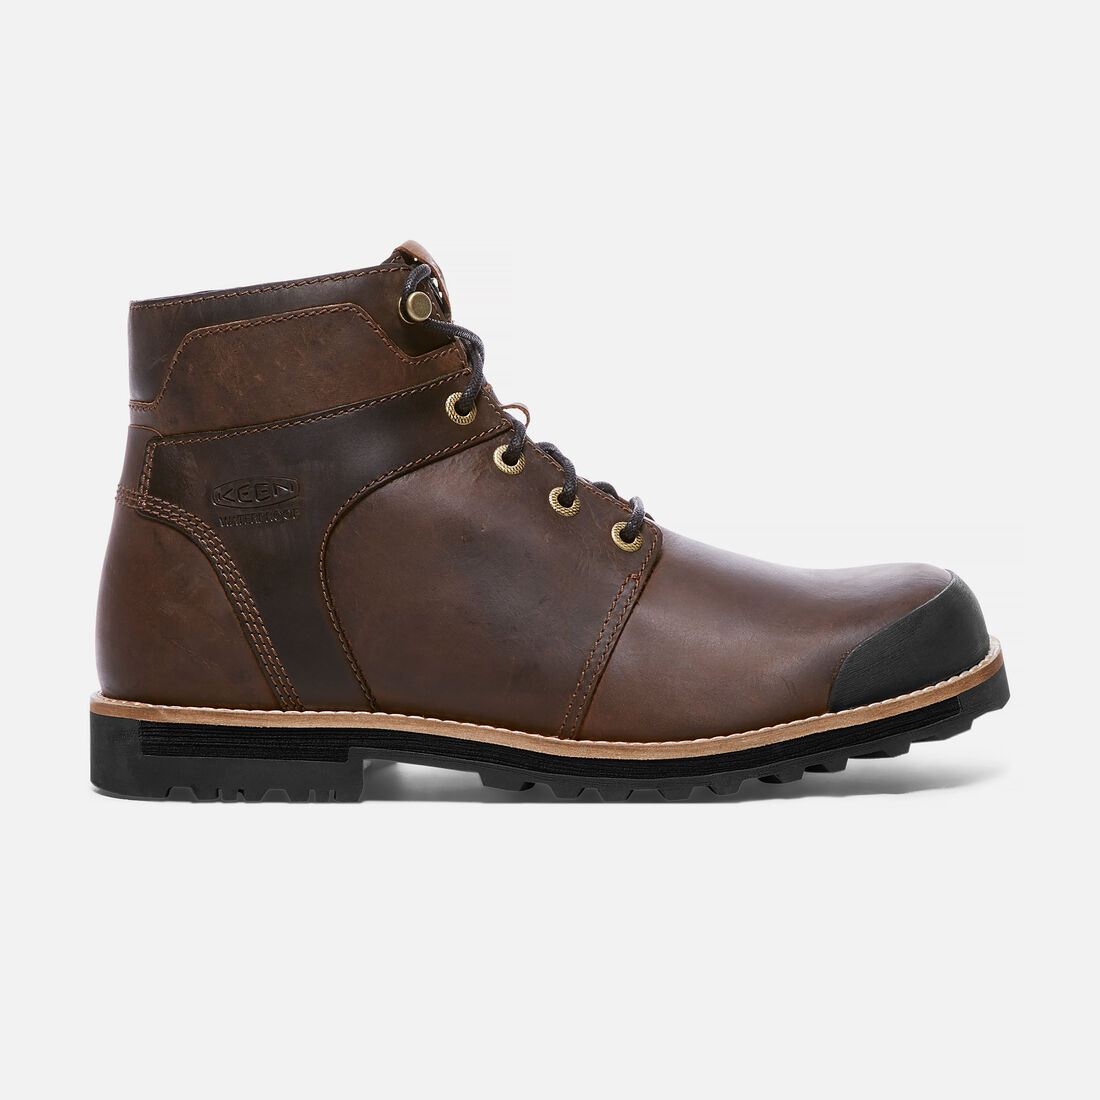 Men's 'THE ROCKER' Waterproof Boot in Big Ben/Eiffel - large view.